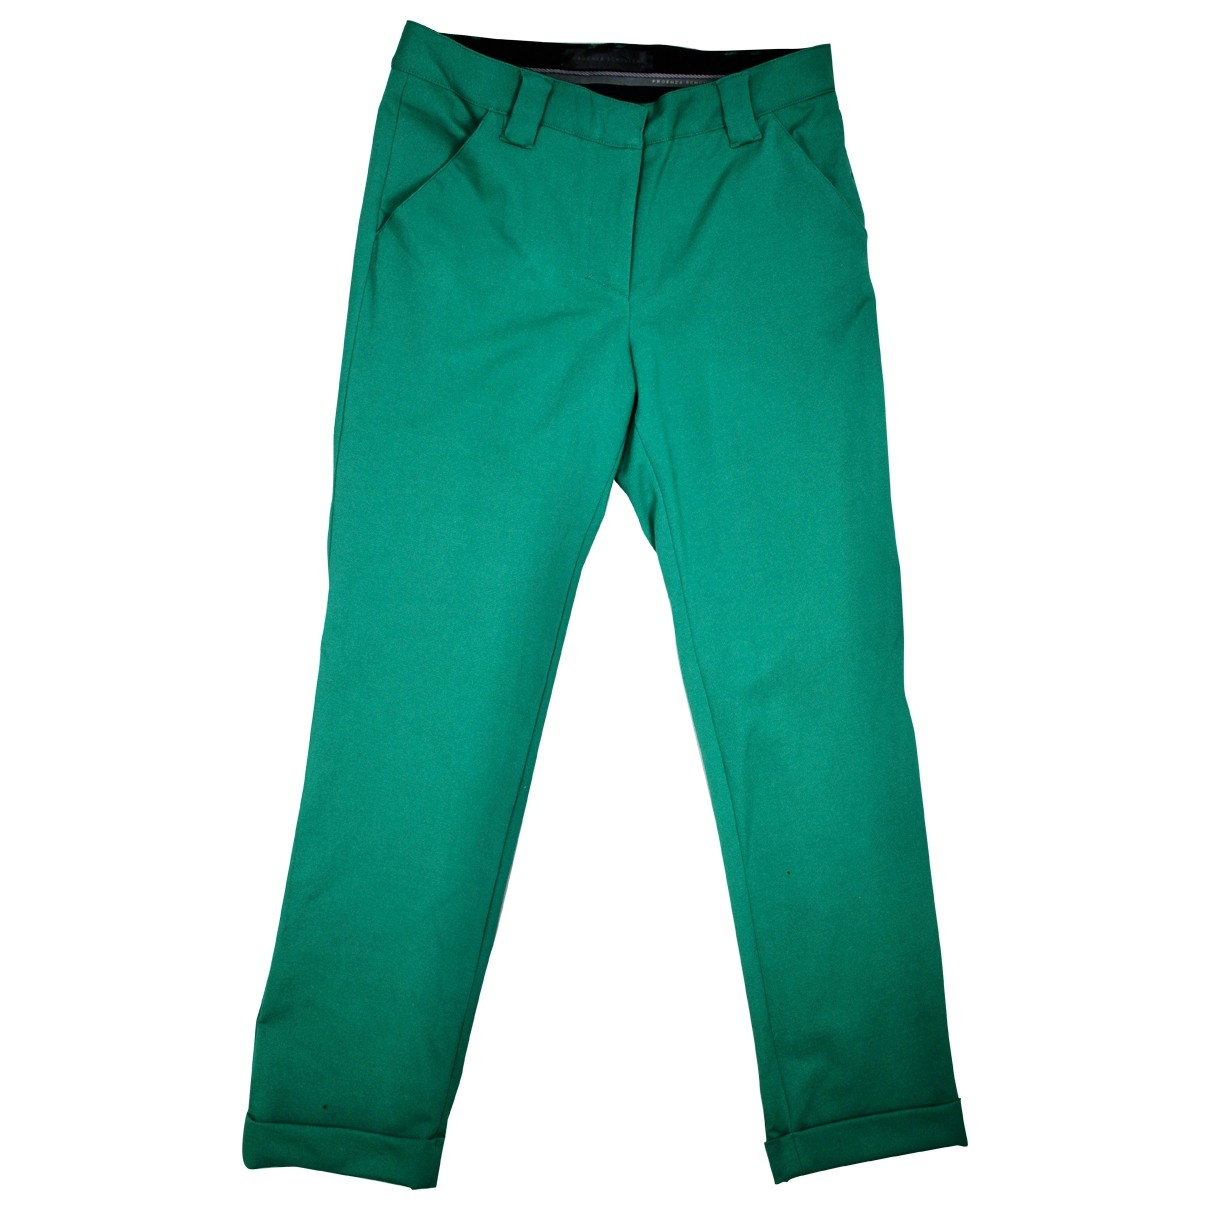 Proenza Schouler \N Green Cotton Trousers for Women 4 US